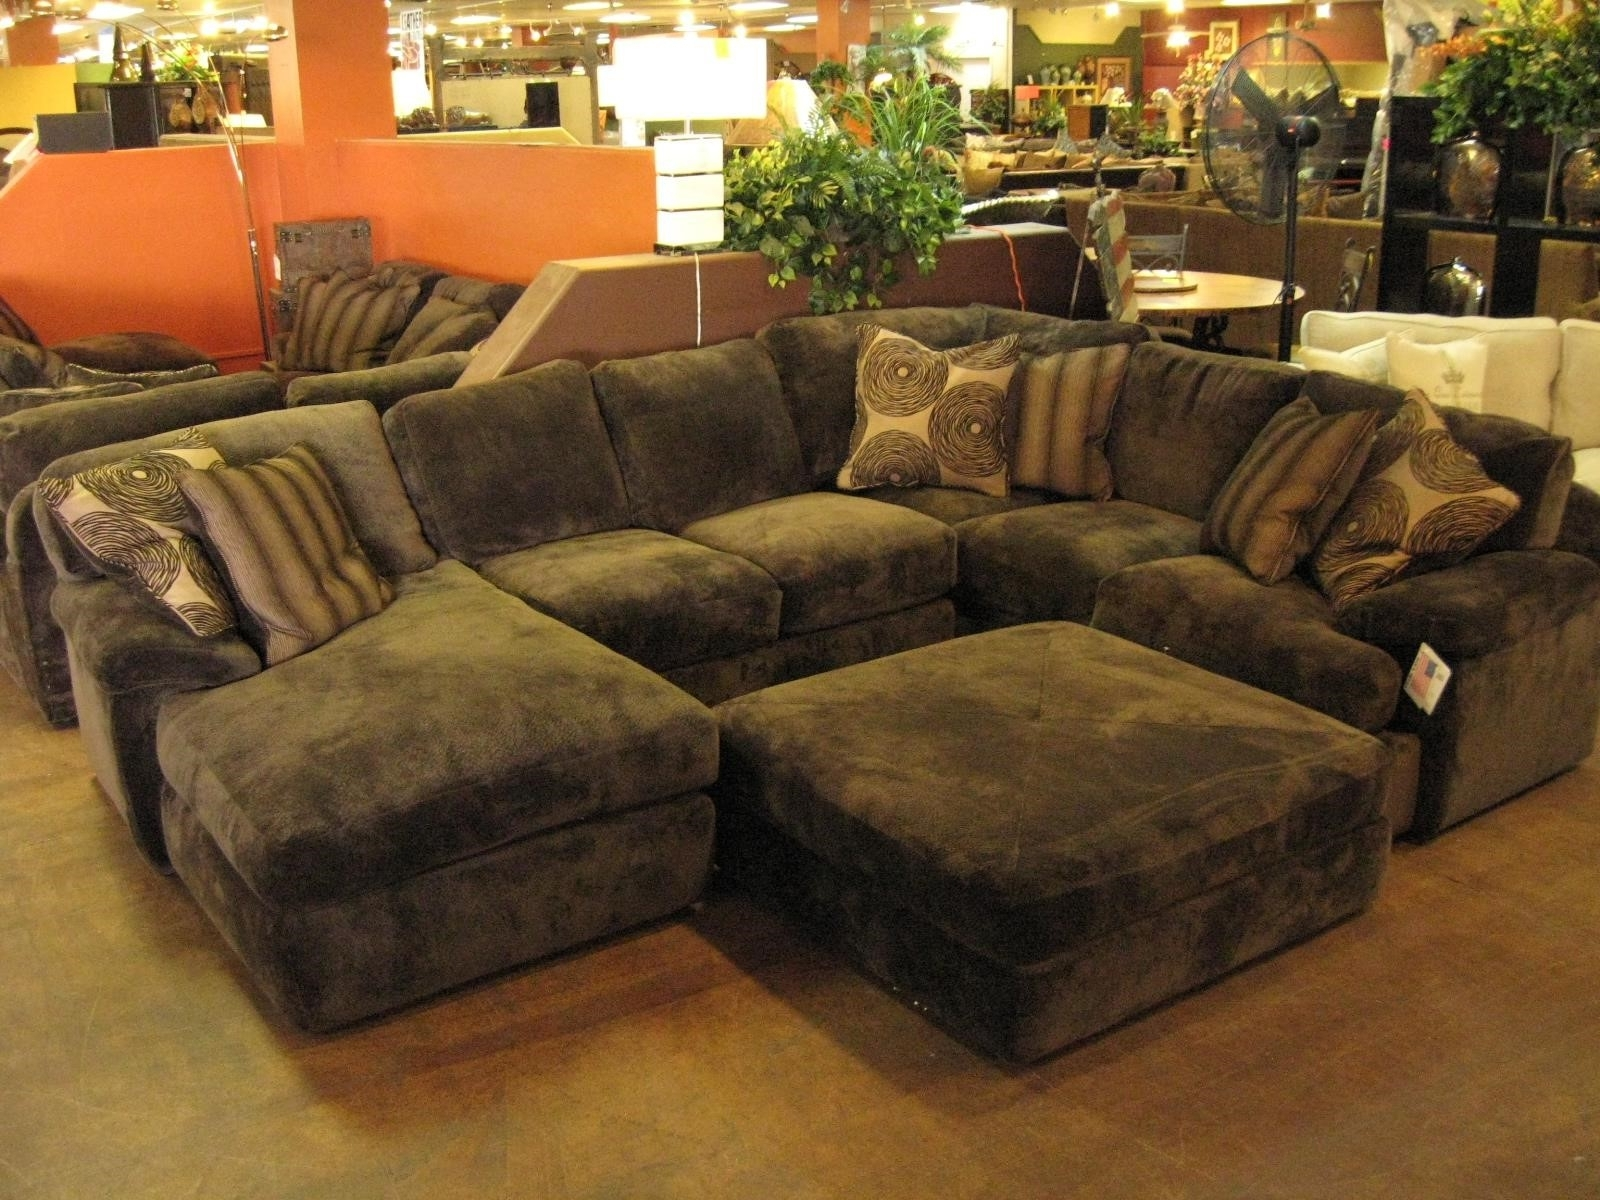 Sofa : Magnificent Large Sectional Sofa With Chaise Reclining Inside Widely Used Oversized Sectional Sofas (View 3 of 15)